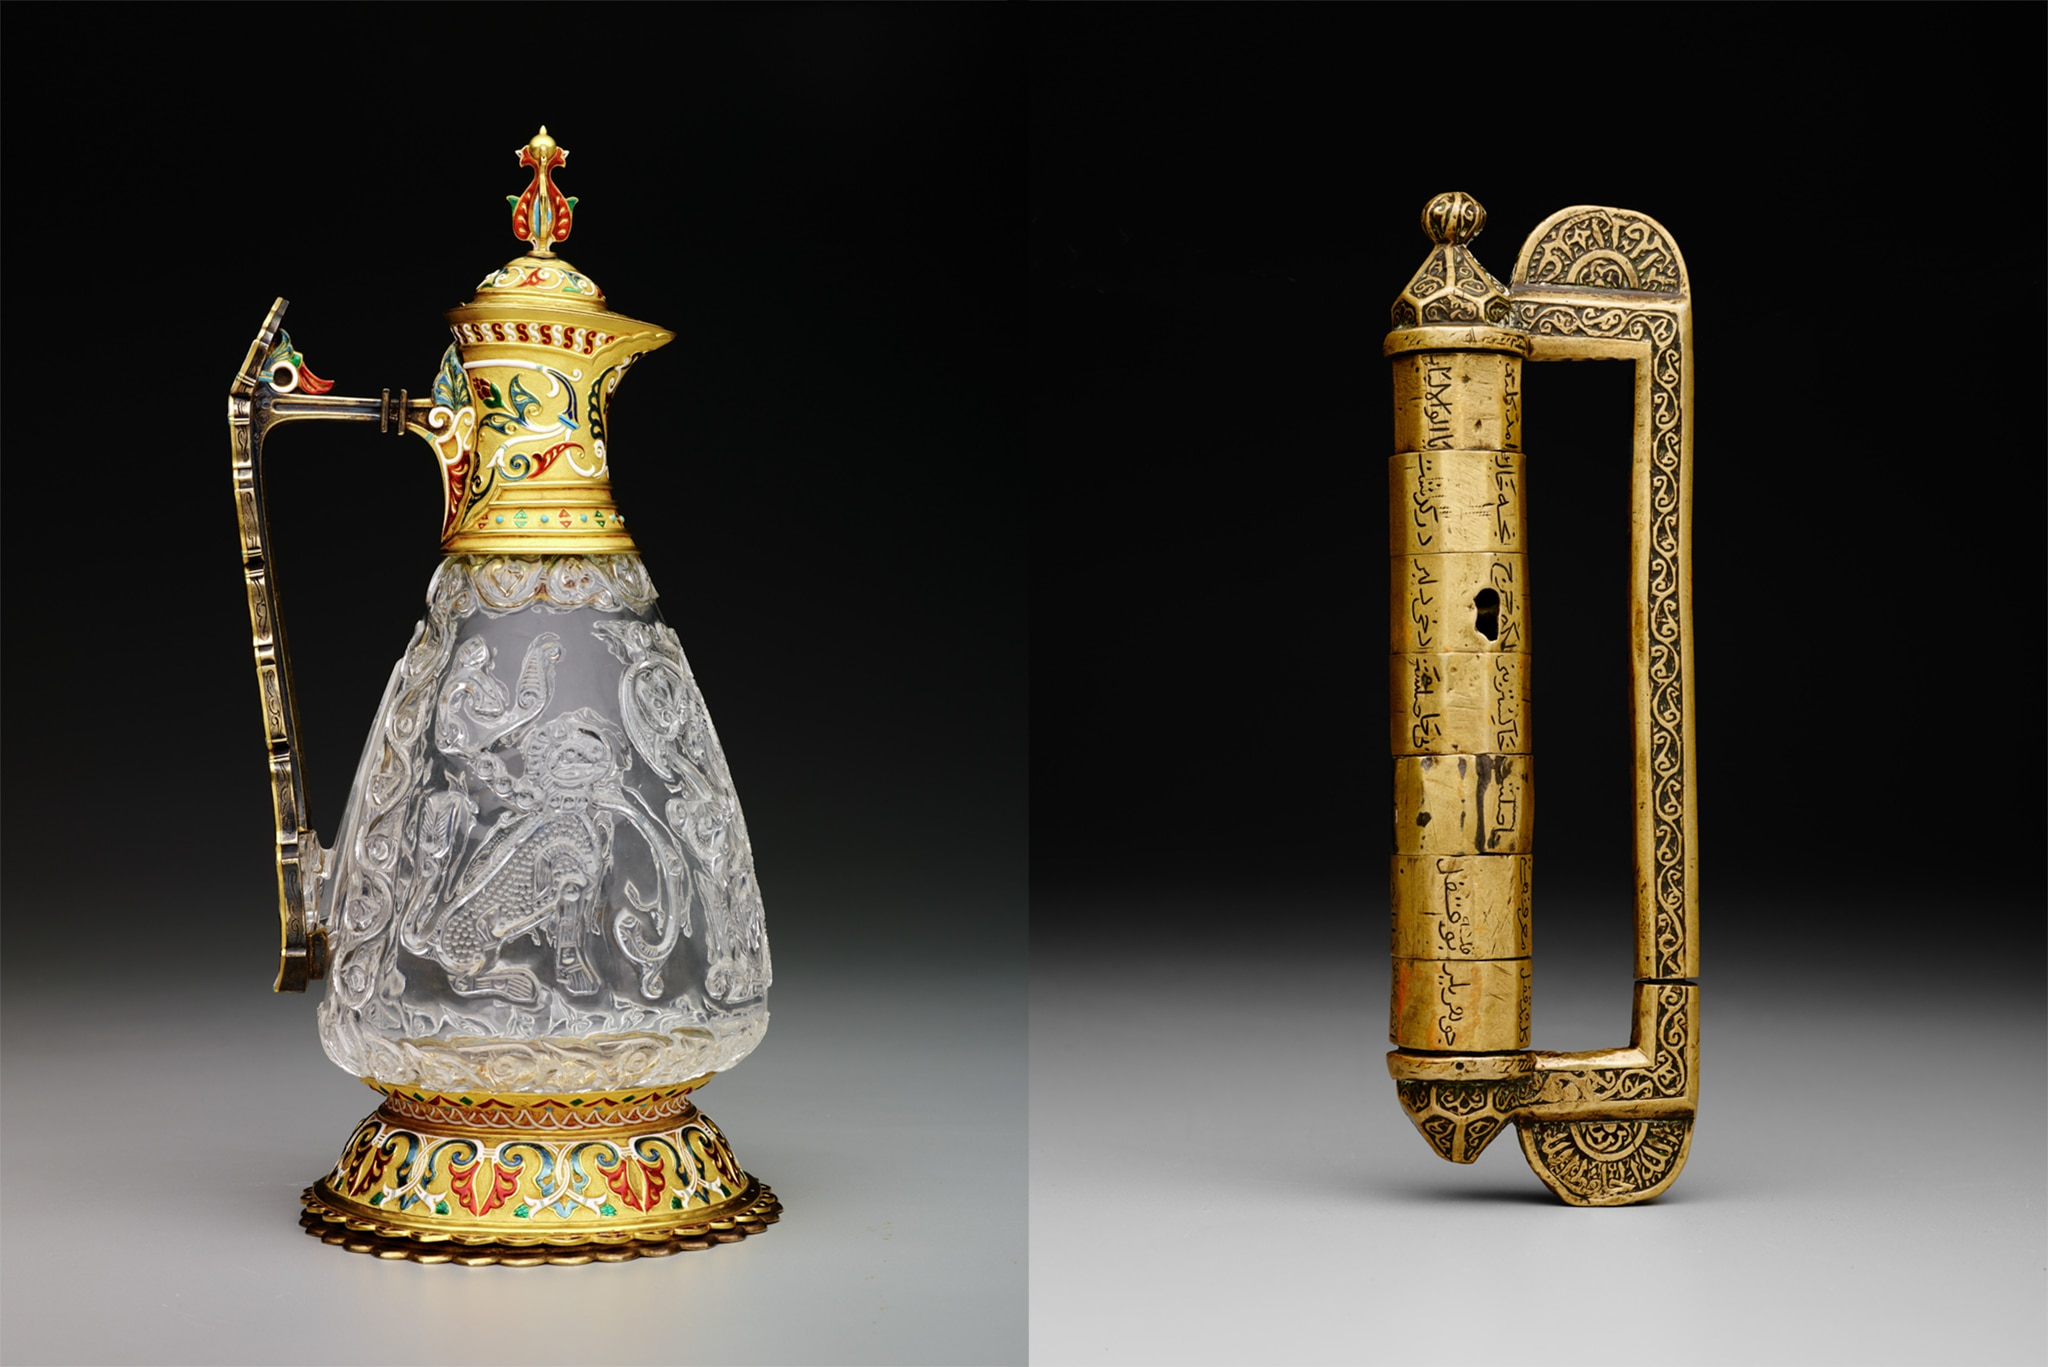 Carved crystal pitcher on left and inscribed, multisectional cylinder with handle on right (The Keir Collection of Islamic Art/Dallas Museum of Art)